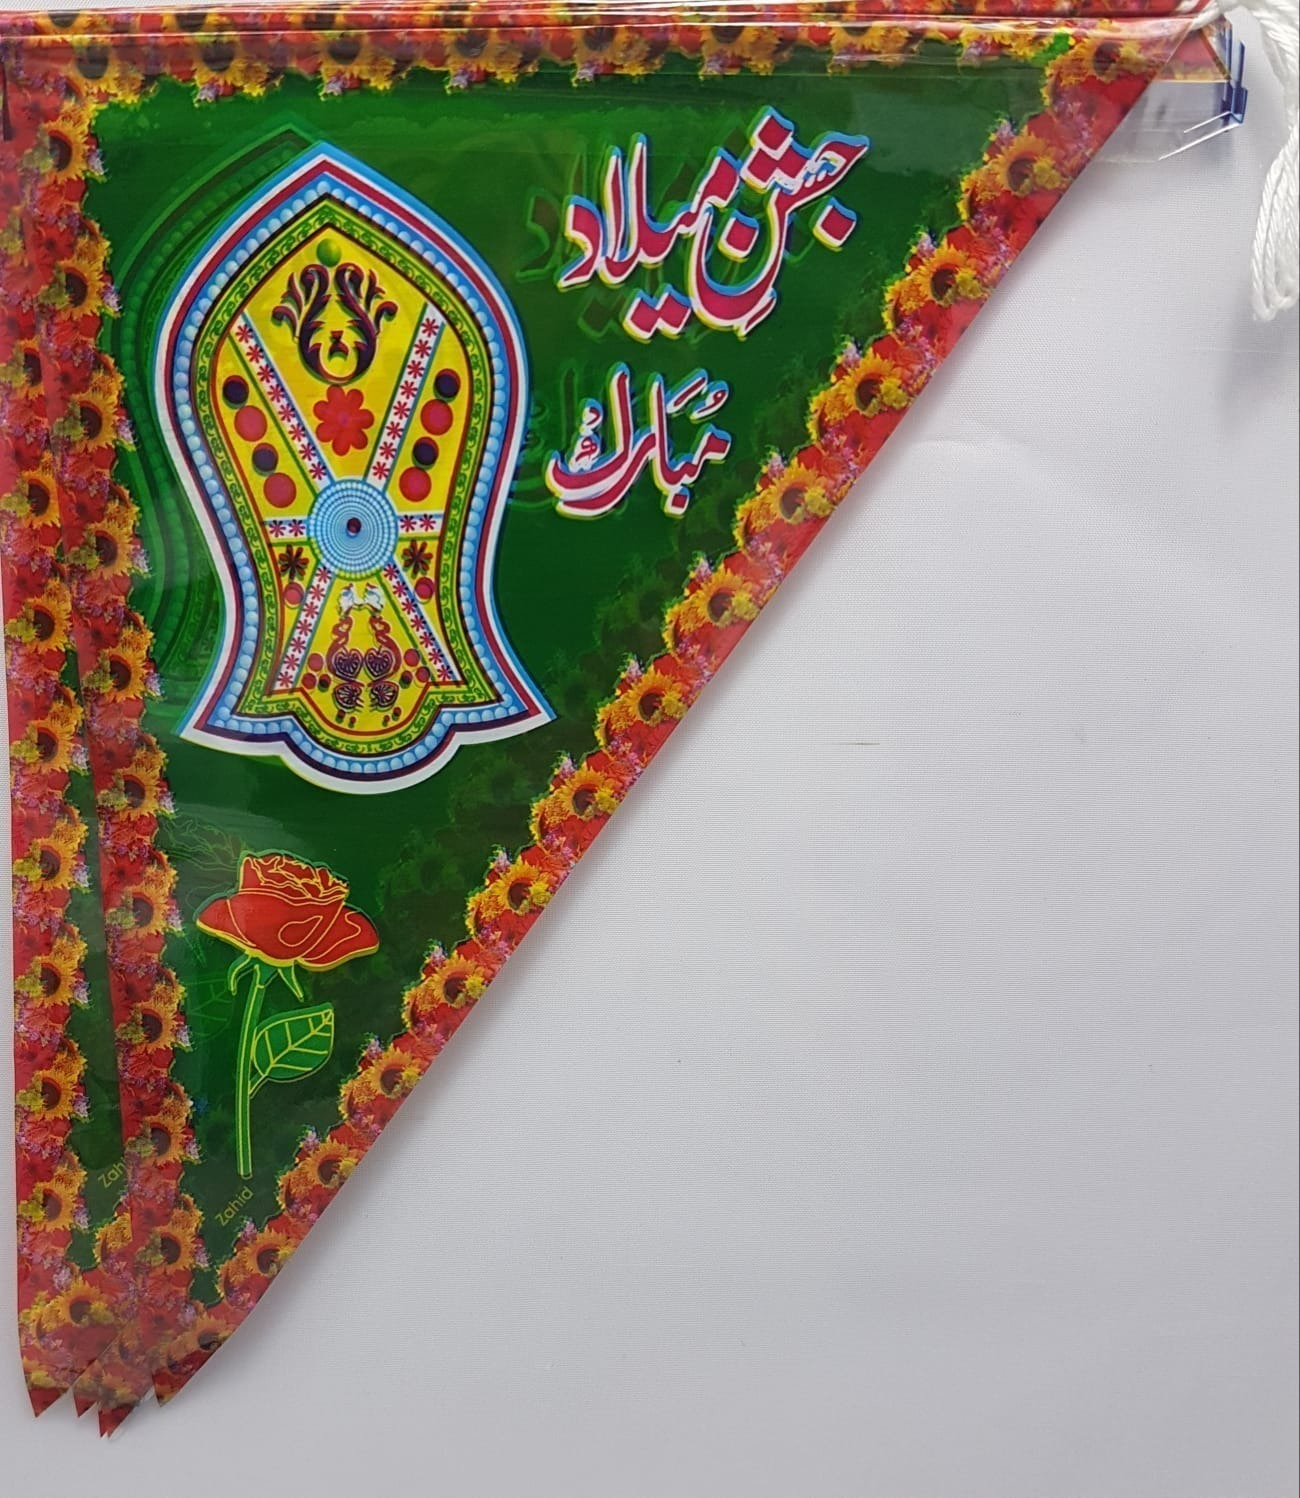 1 x 10 Milad Jhandiya  (Bunting) Triangular Plastic flags Design 4